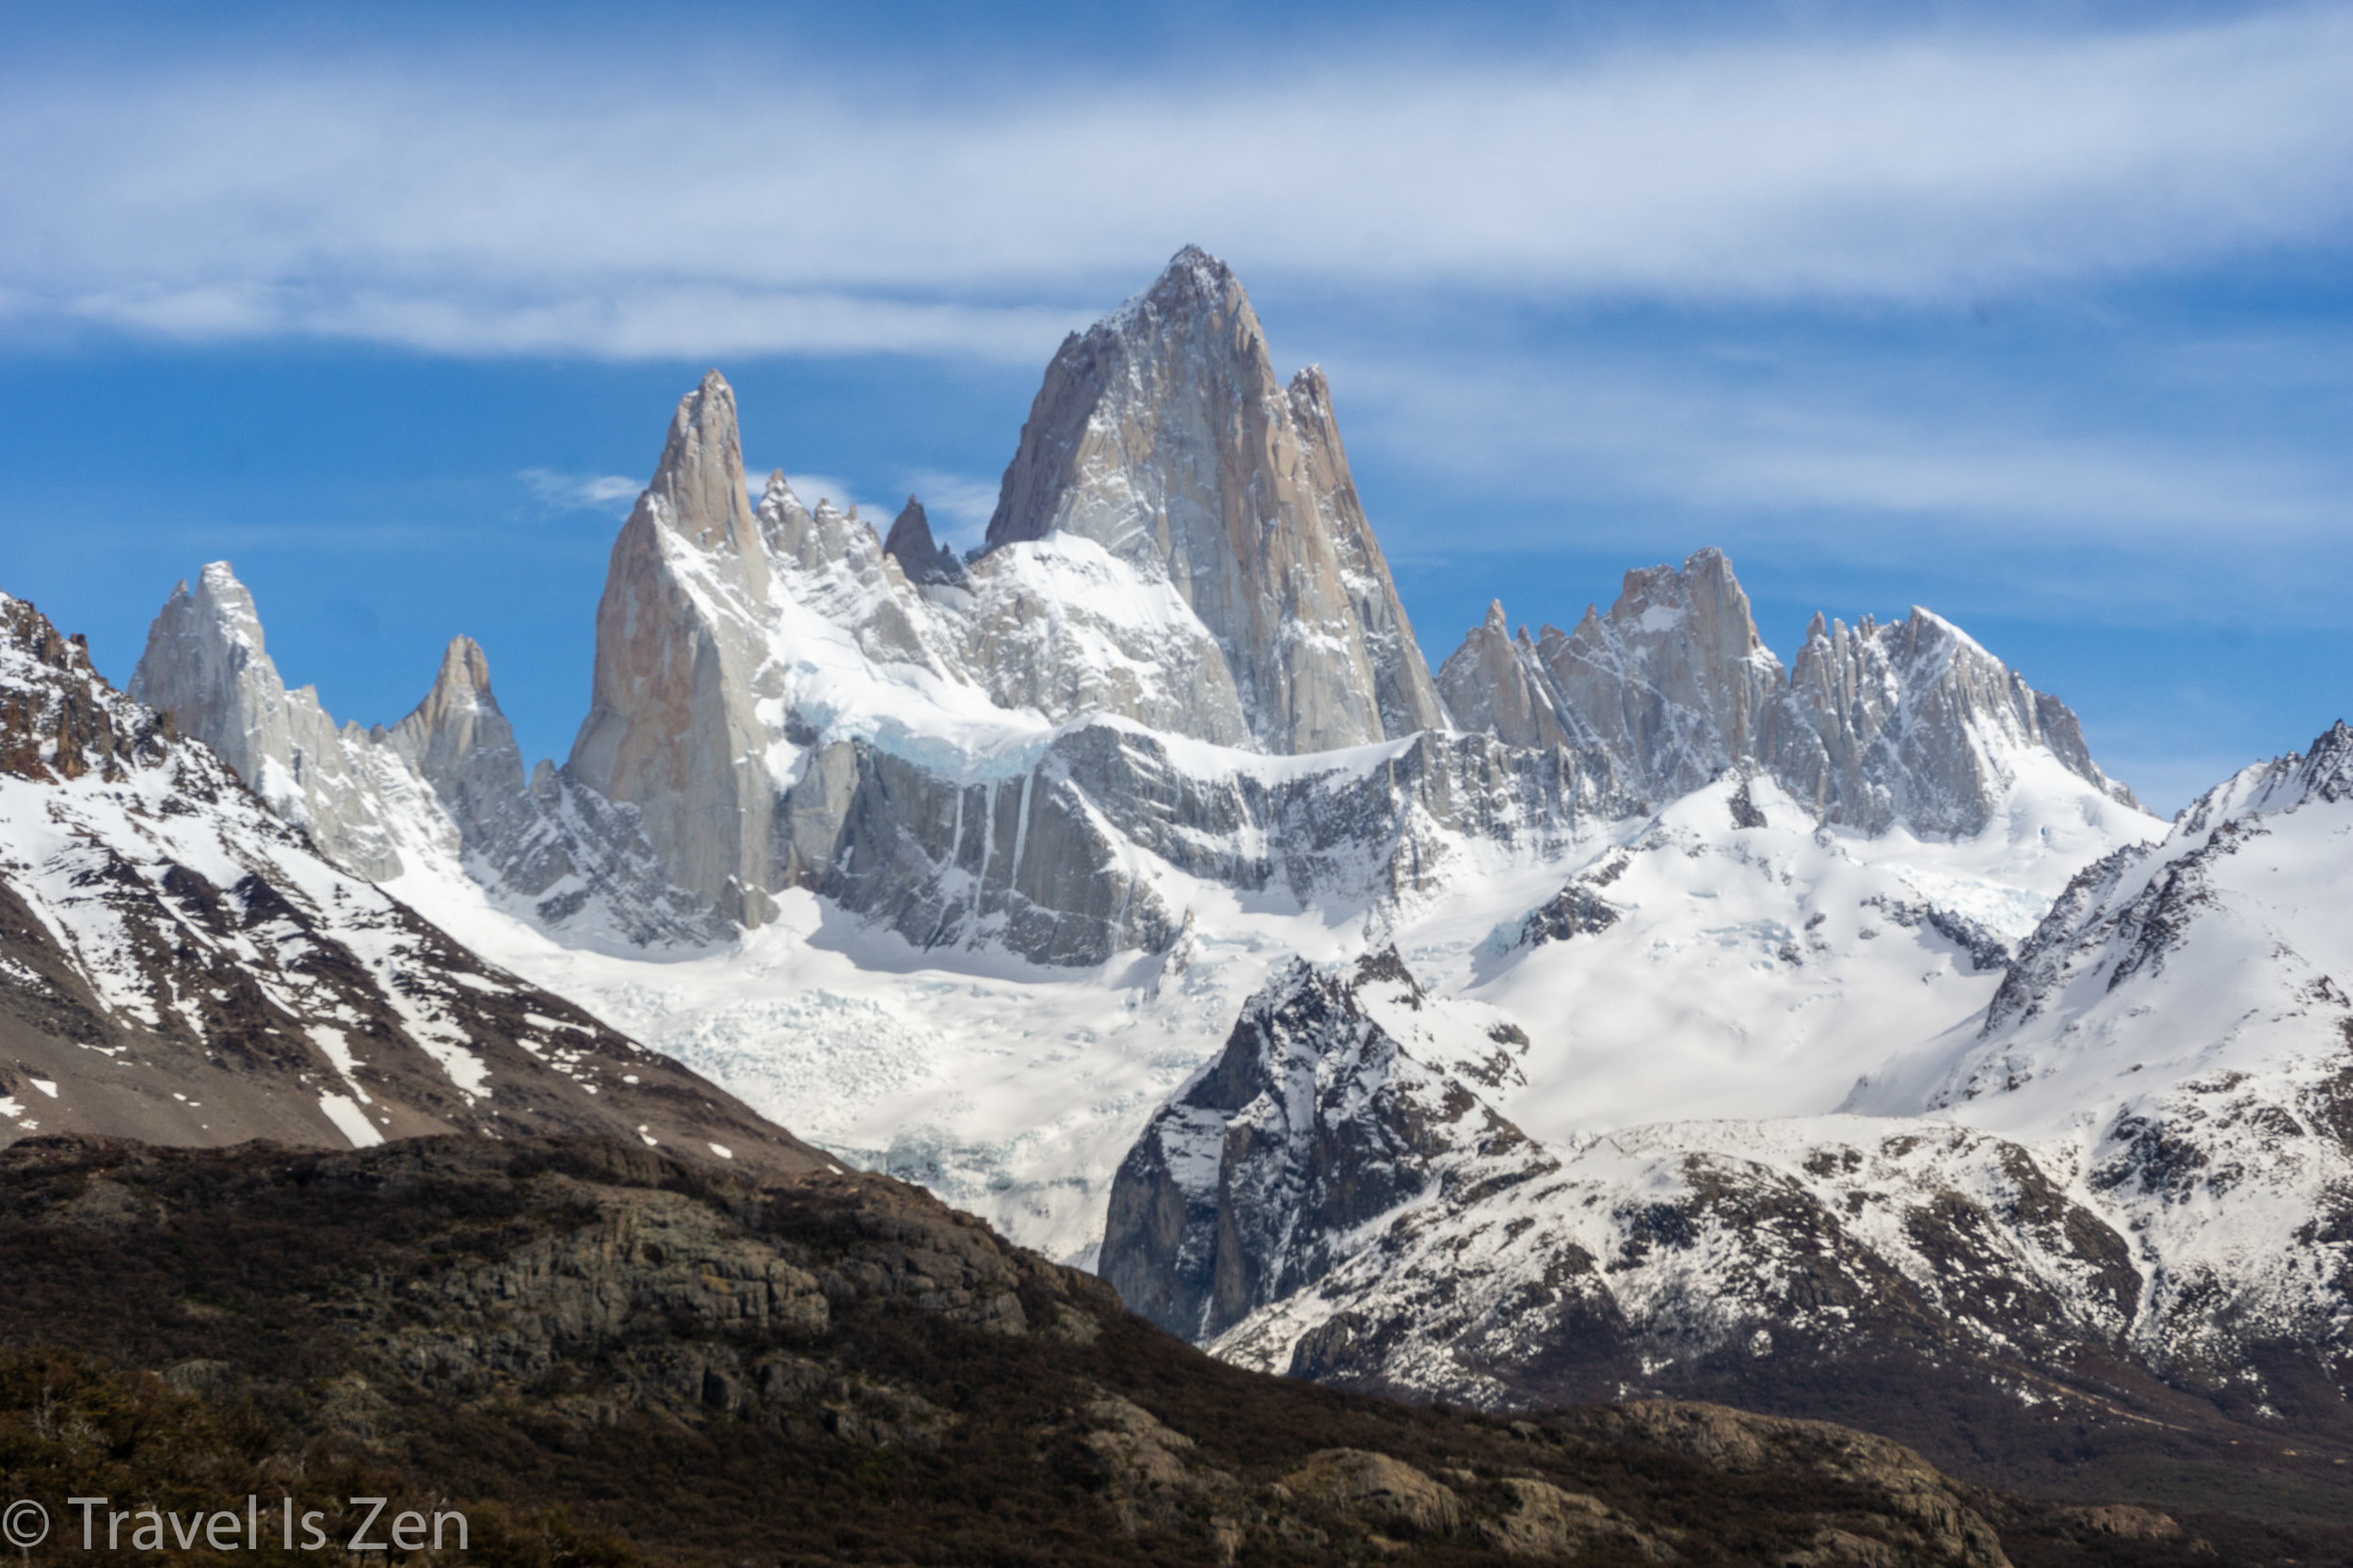 Fitz Roy, the highest peak in Glacier National Park, Argentina